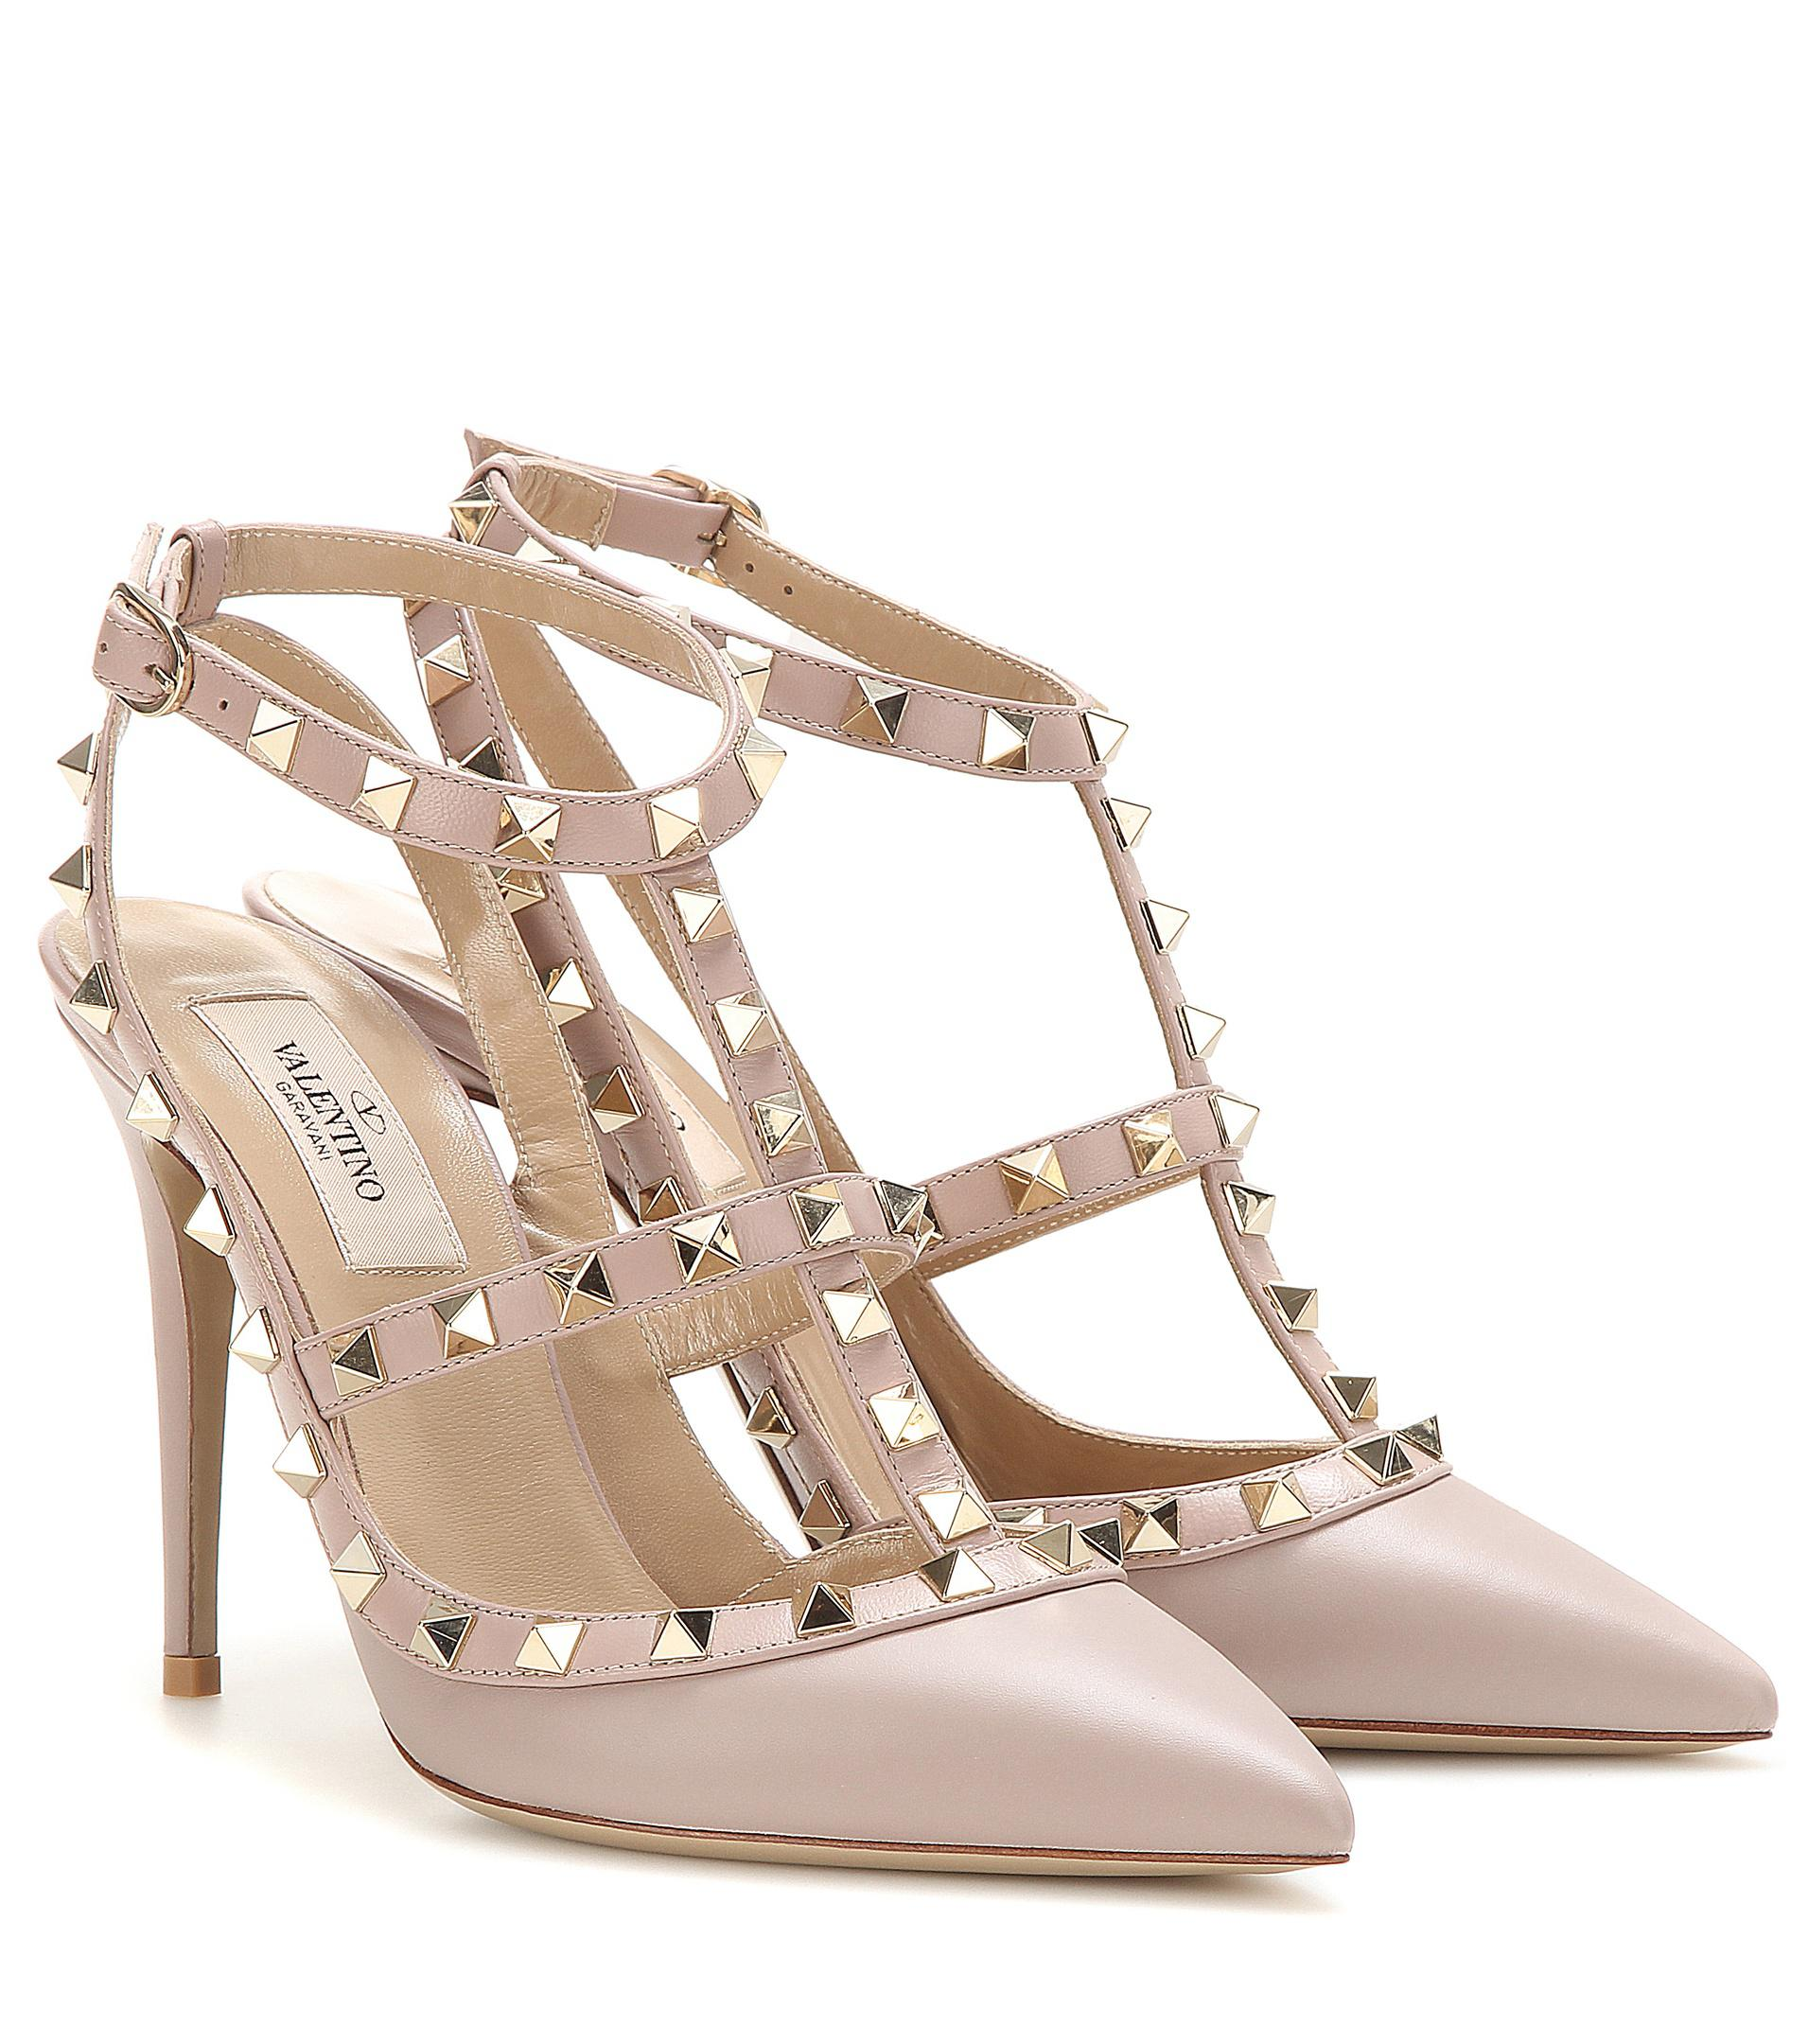 01c0574f7c6 Valentino Rockstud Leather Pumps in Natural - Lyst